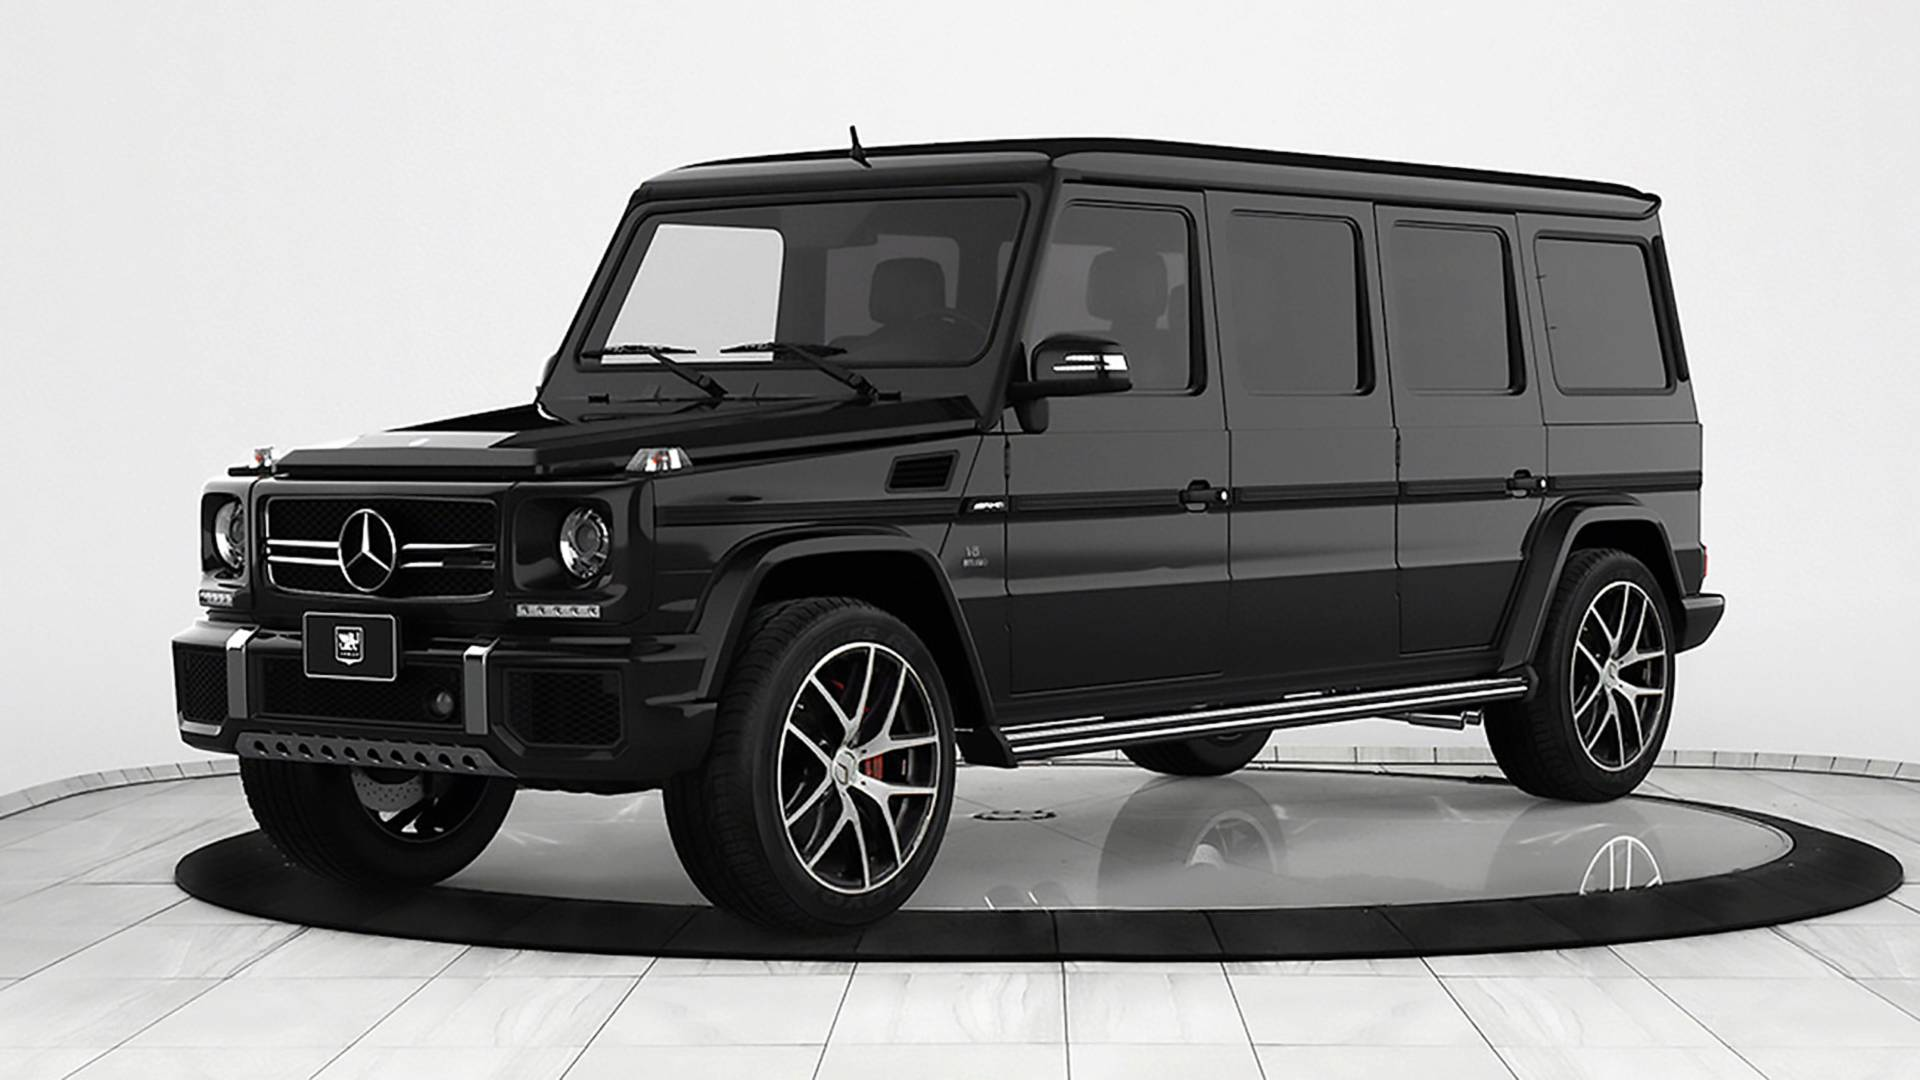 Bulletproof, Mercedes-Benz G63 AMG, Limousine, Rs 8cr, Mercedes-Benz, Newsmobile, Mobile news, India, Auto, Cars